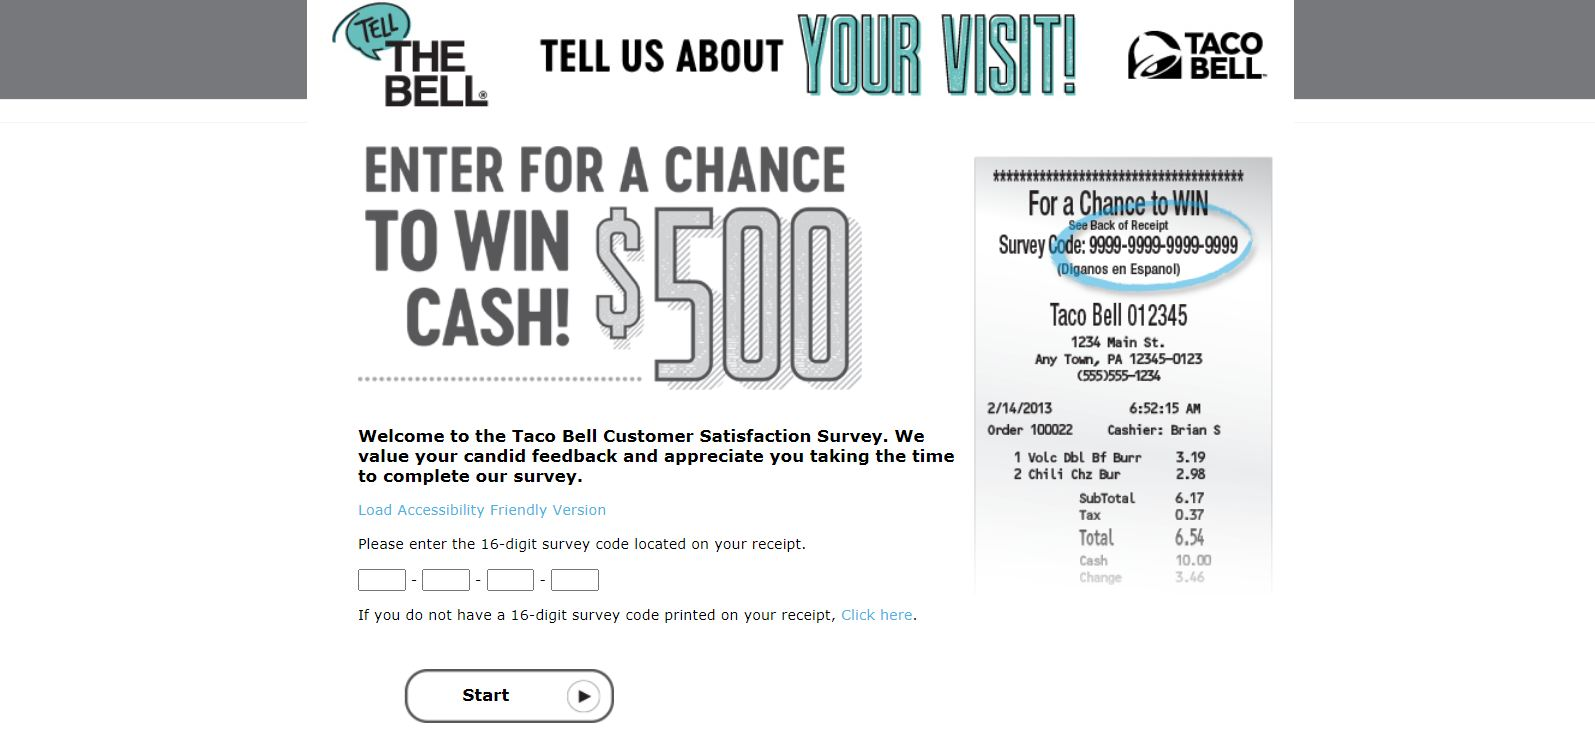 Tell the Bell - Taco Bell Customer Satisfaction Survey